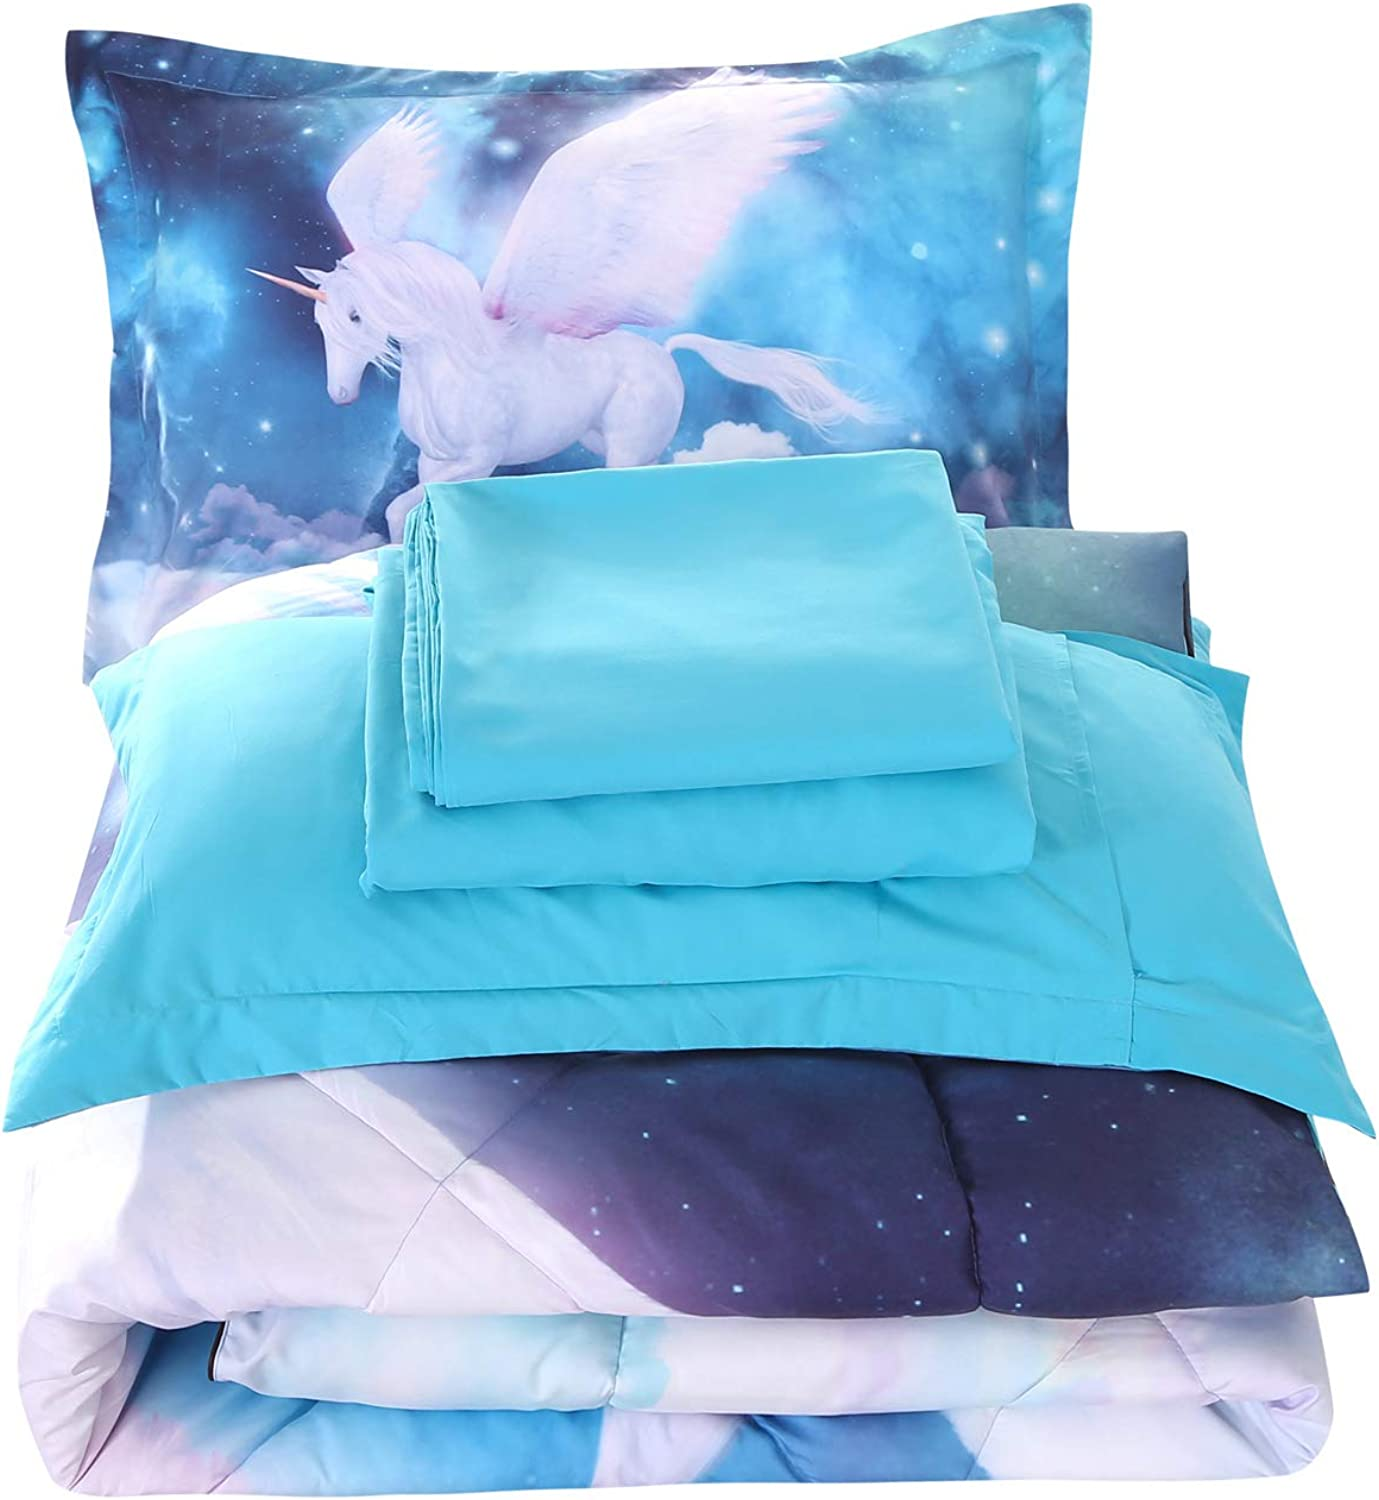 Wowelife 3D Queen Fly Unicorn Comforter Sets 5 Piece Girl Bedding Set Unicorn Green Bedspreads with Comforter, Flat Sheet, Fitted Sheet and 2 Pillow Cases for Teens(Green Unicorn, Queen)